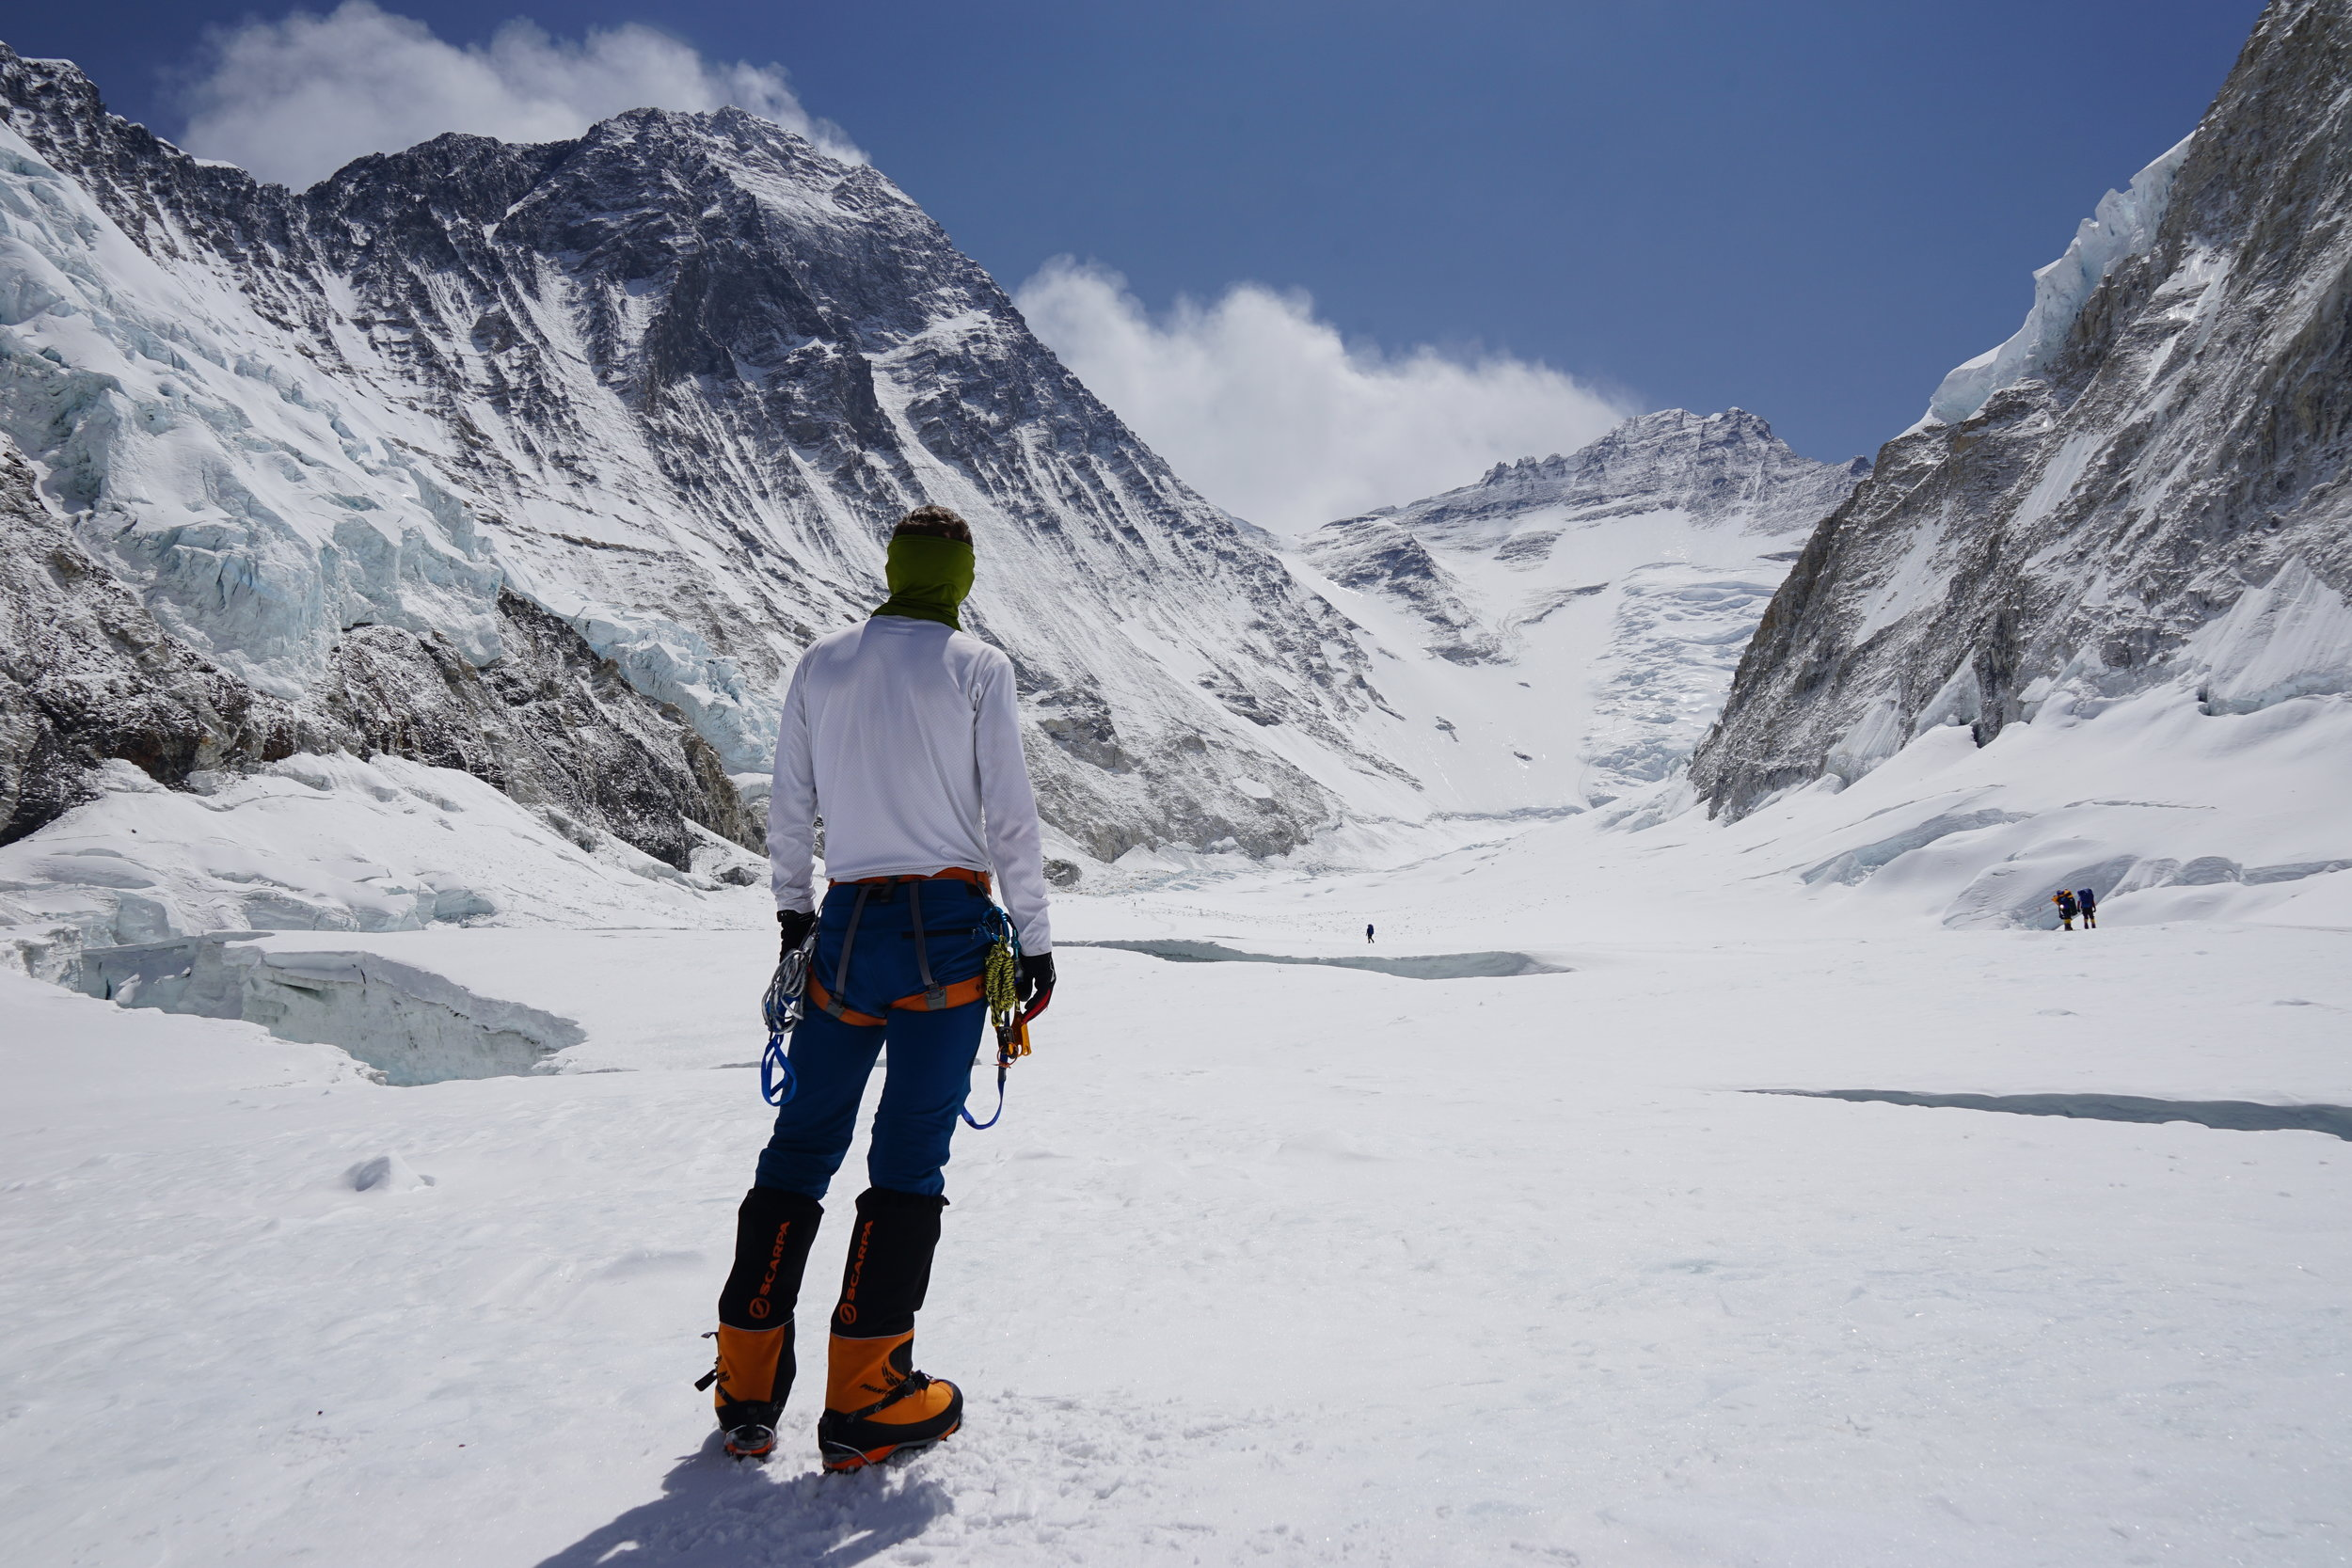 The view from Camp 2 on Everest. The daunting route to the summit looms ahead.